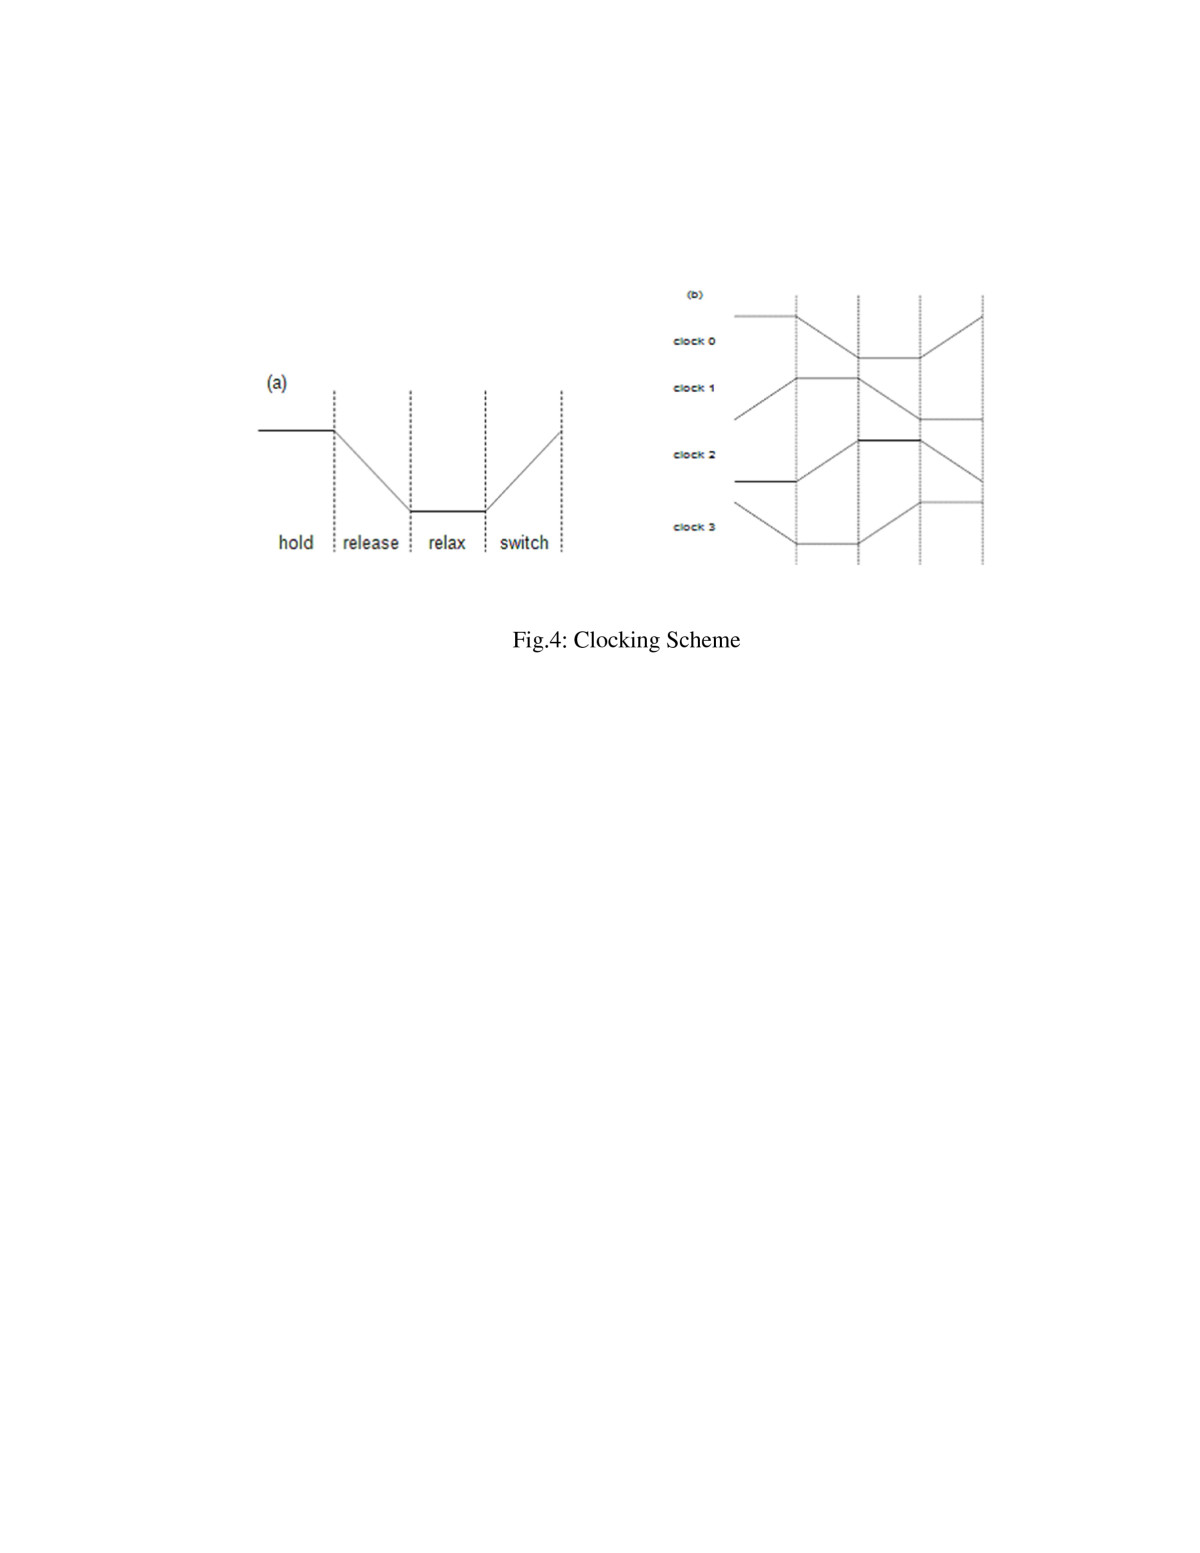 Novel Design Of Combinational And Sequential Logical Structures In Logic Diagram 8 To 3 Priority Encoder Open Image New Window